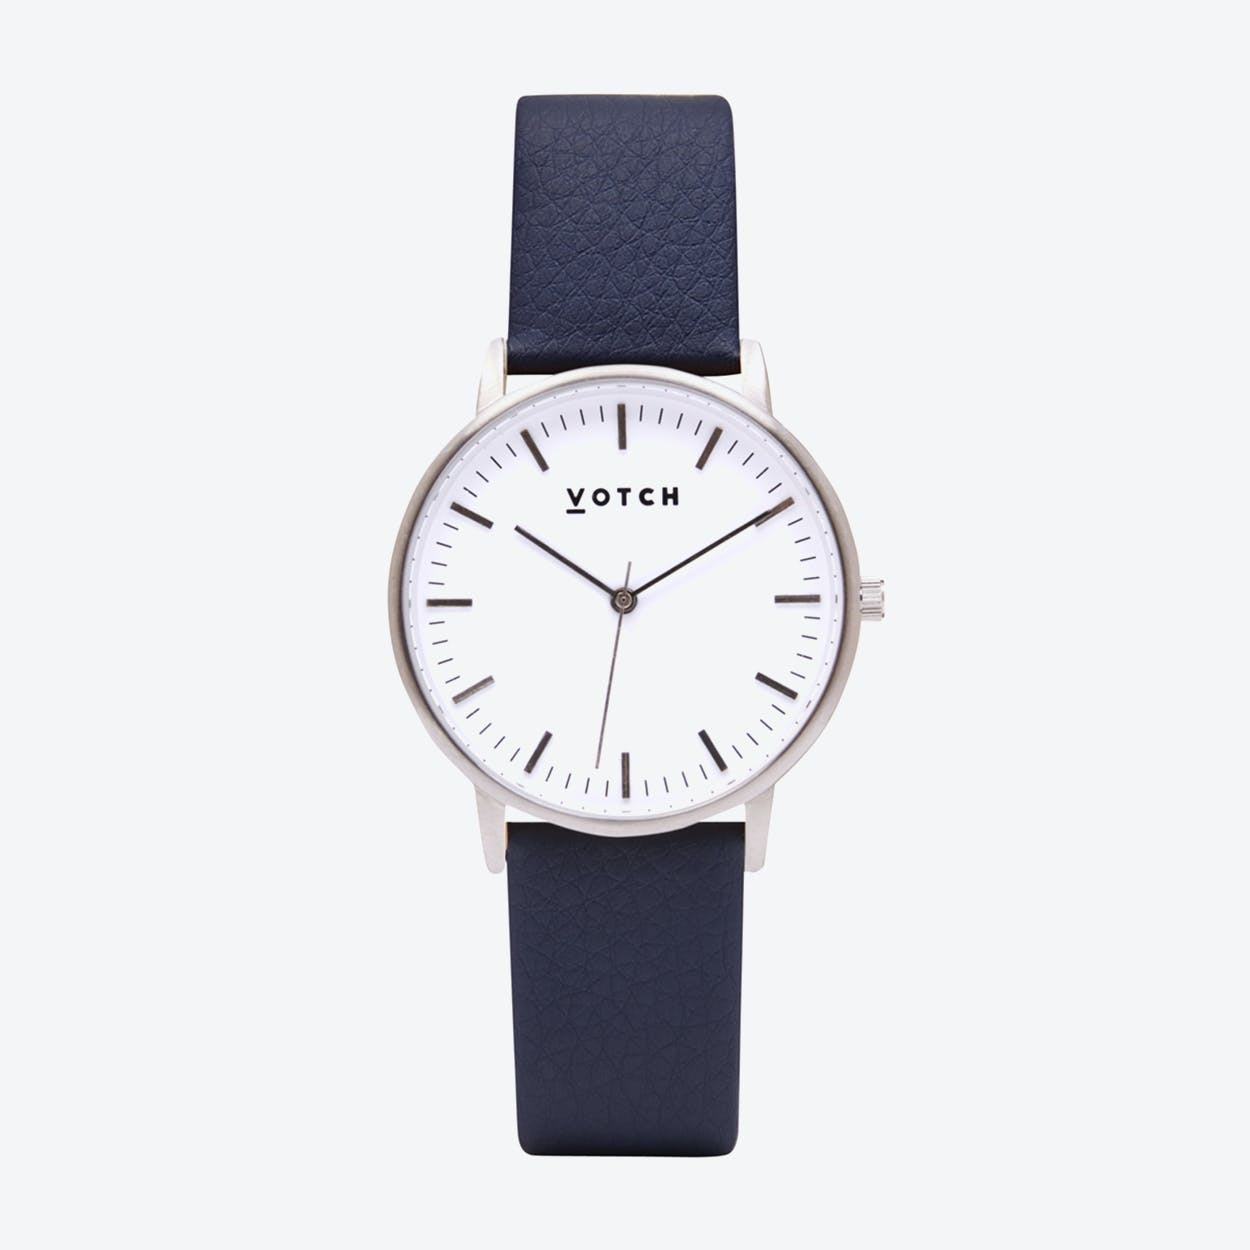 Intense Classic Watch in Silver with White Face and Navy Vegan Leather Strap, 36mm